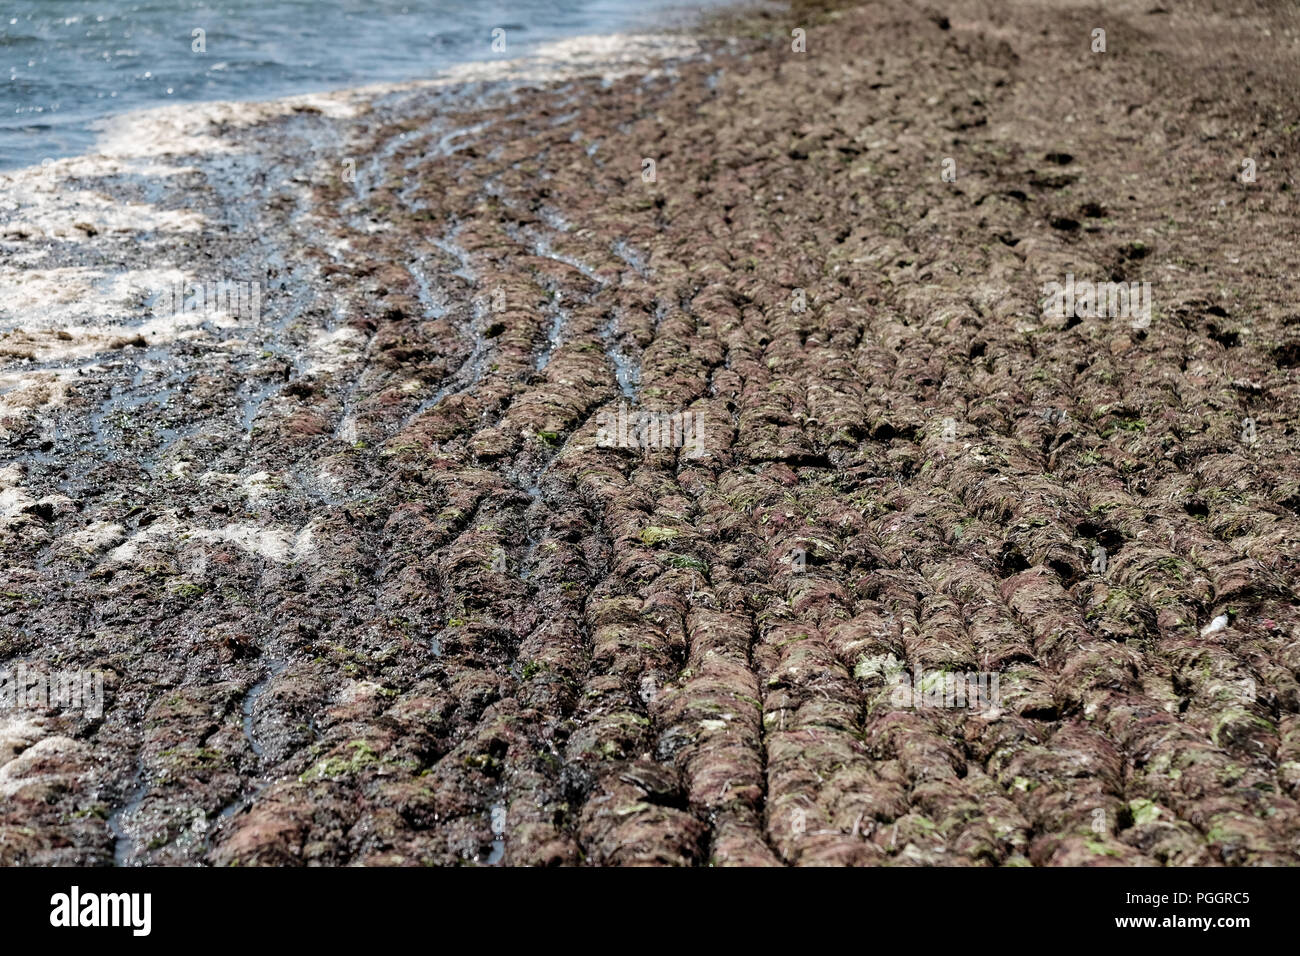 Calshot beach in Southampton UK is covered in a blanket of seaweed after the warm weather spell washes piles of it on the beach in this anomaly. - Stock Image